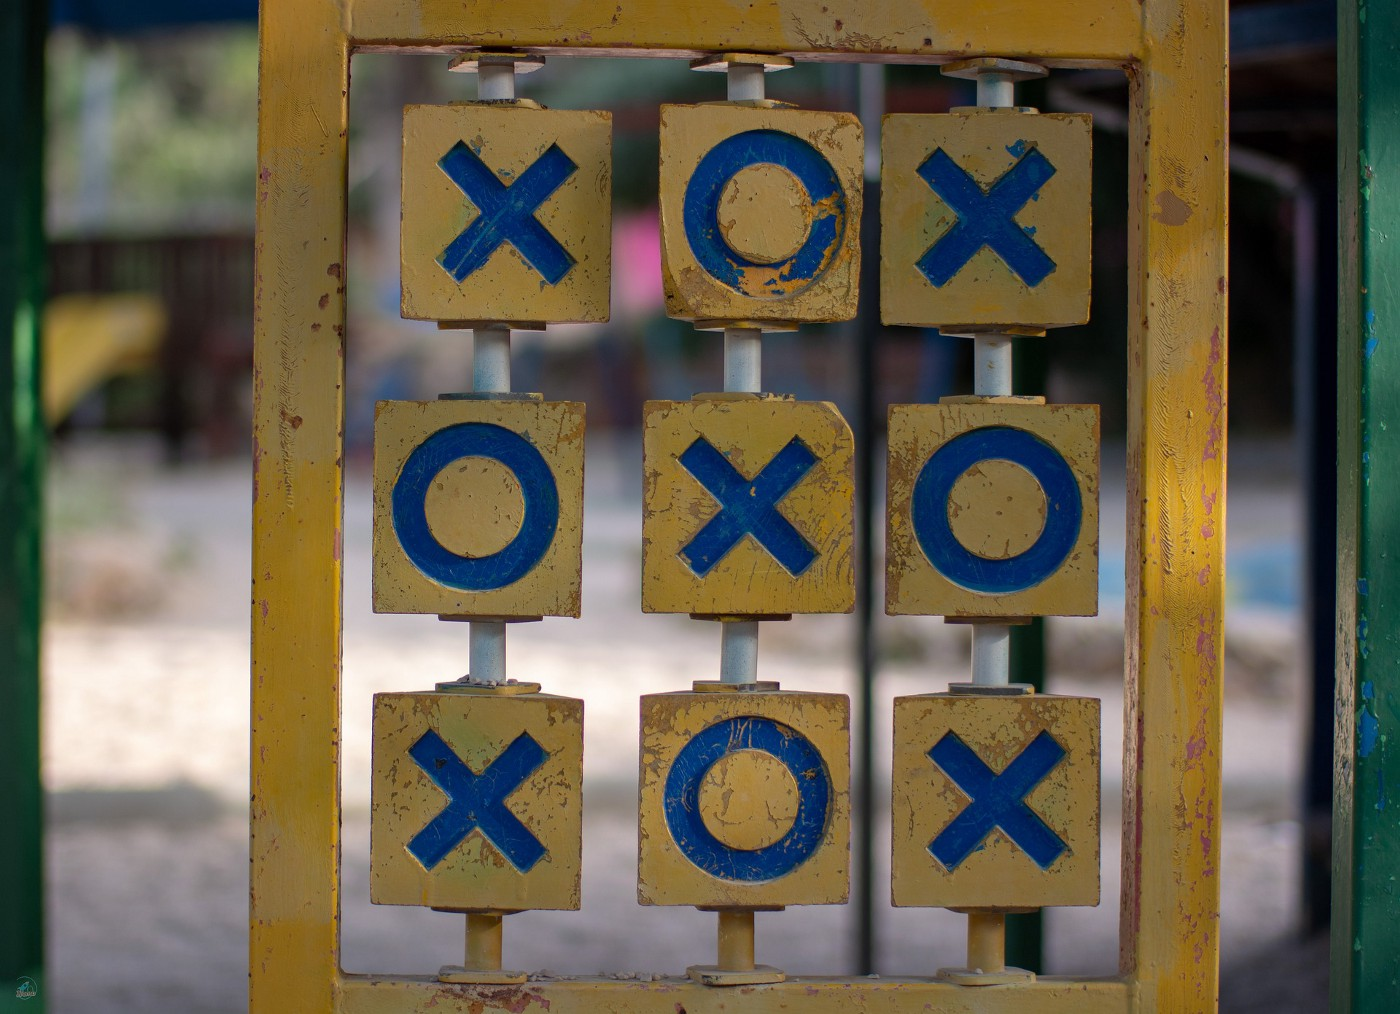 A wooden tic-tac-toe game at a playground.